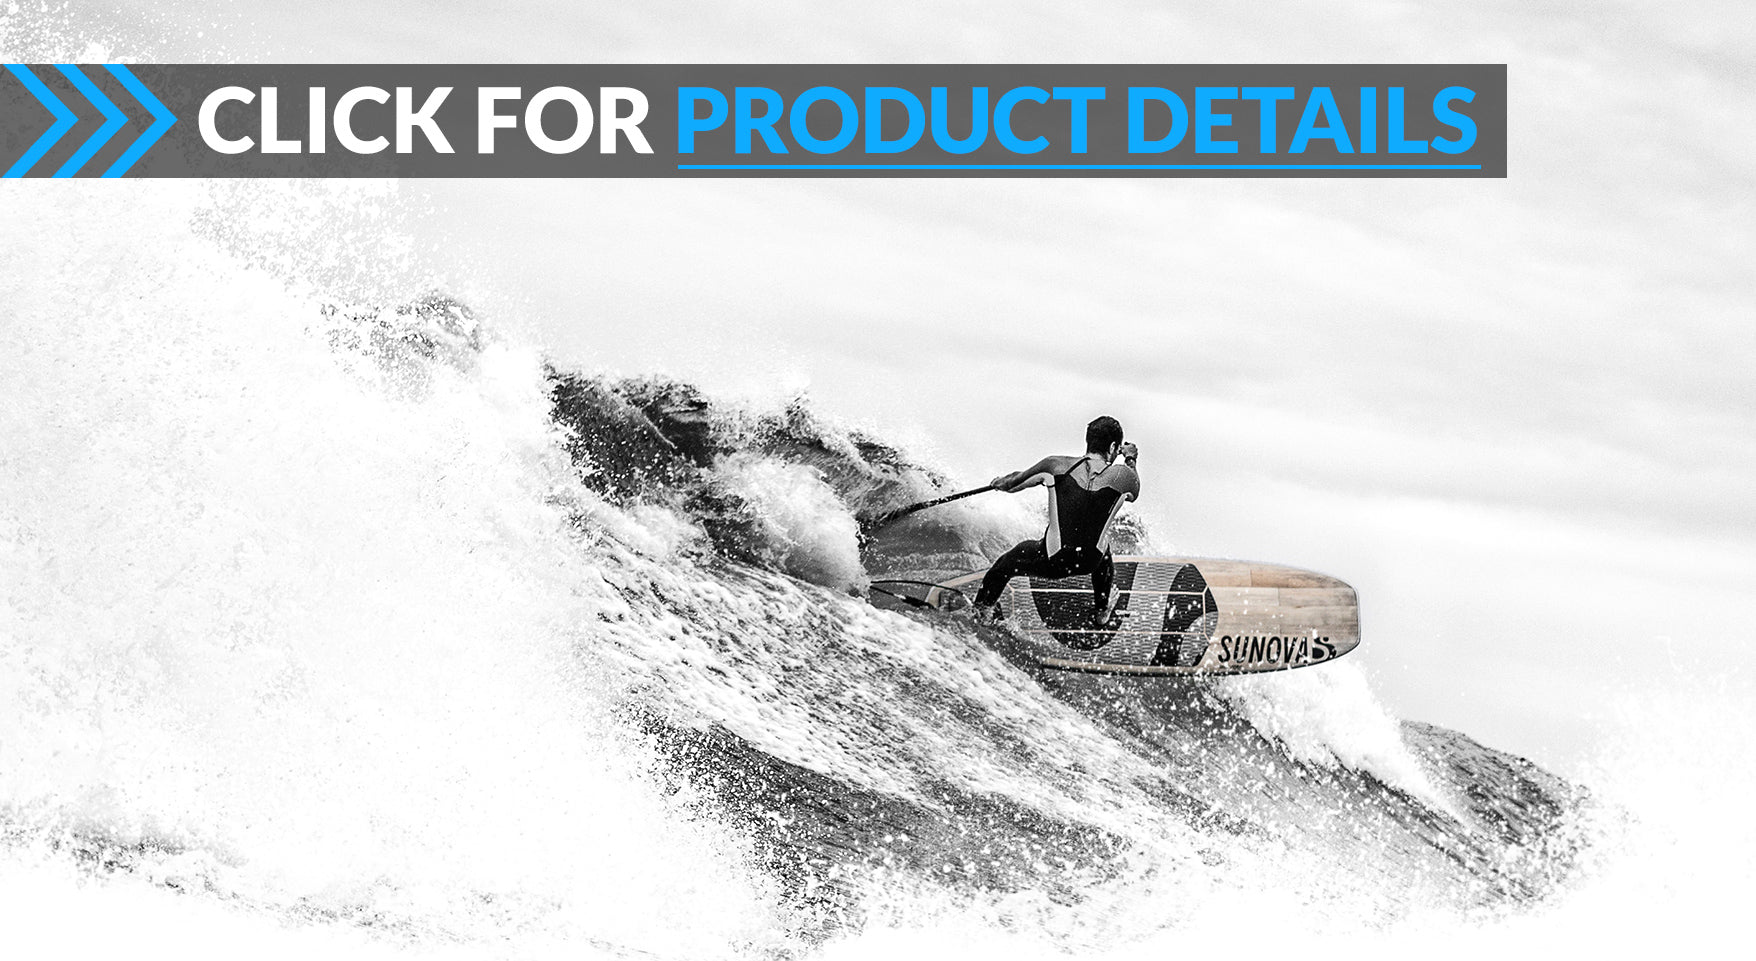 SUP Surfing Product Details